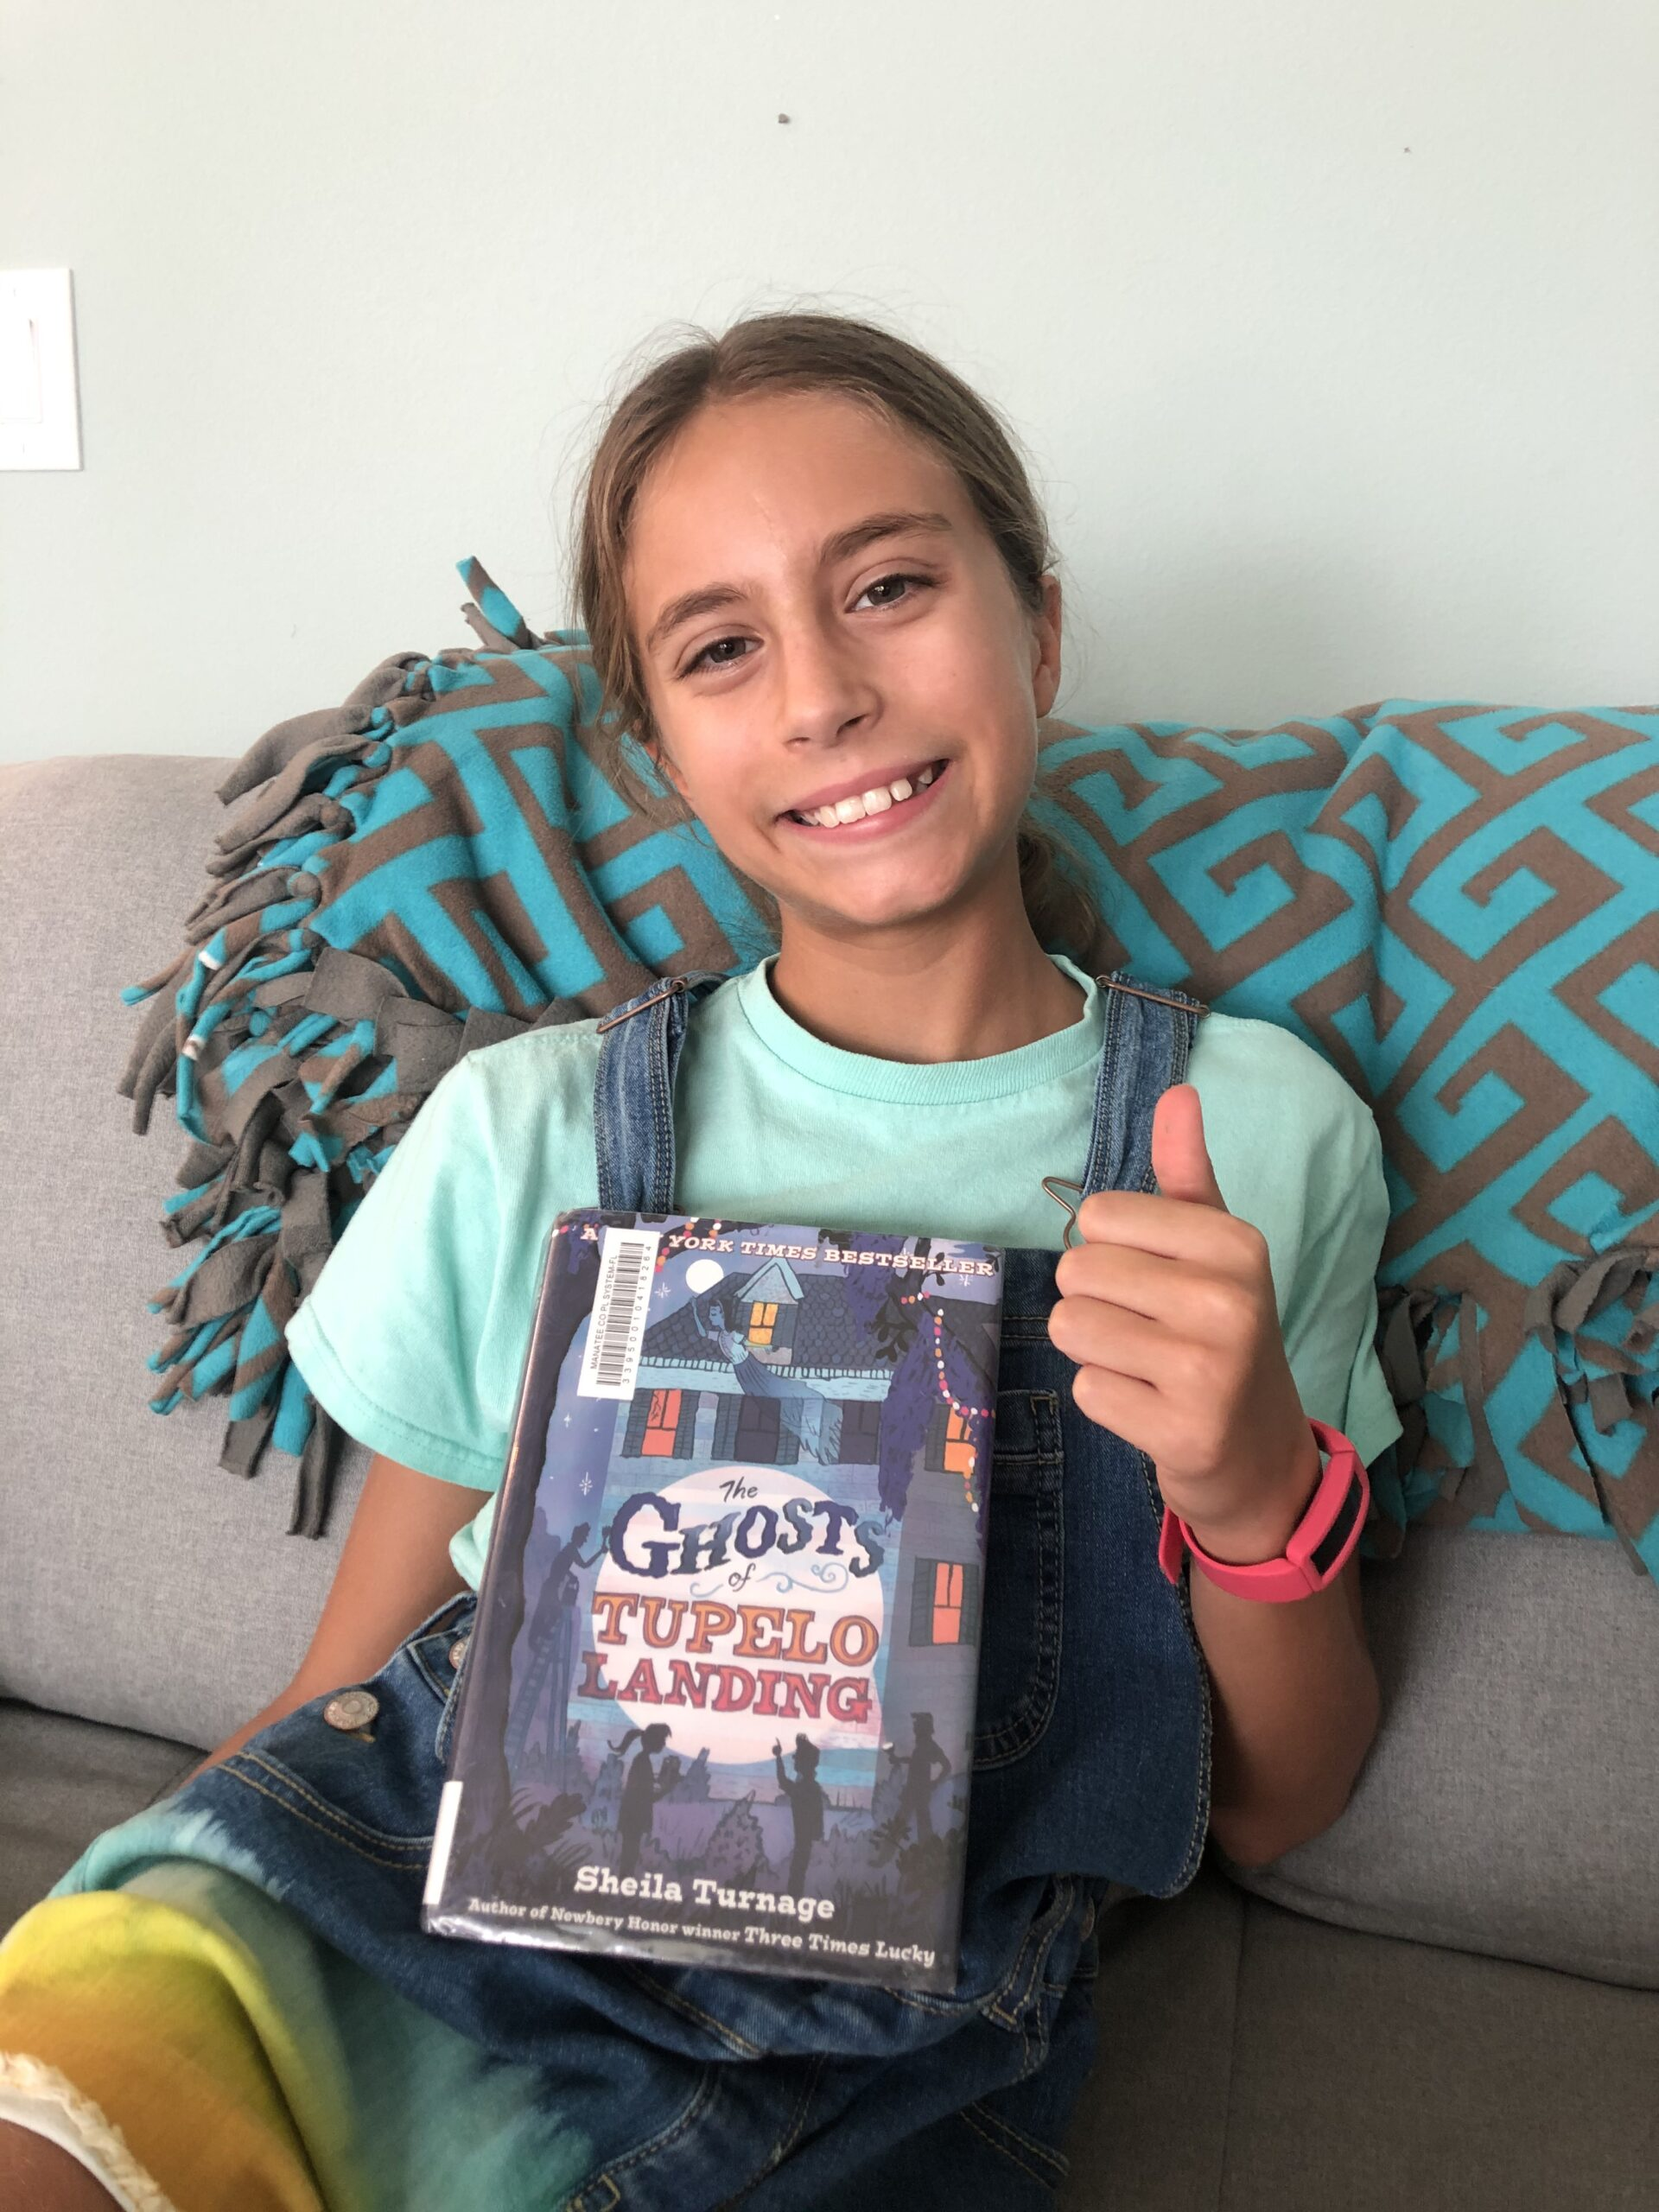 Kinley giving a things up while holding the book of The Ghosts of Tupelo Landing for the children's book review.